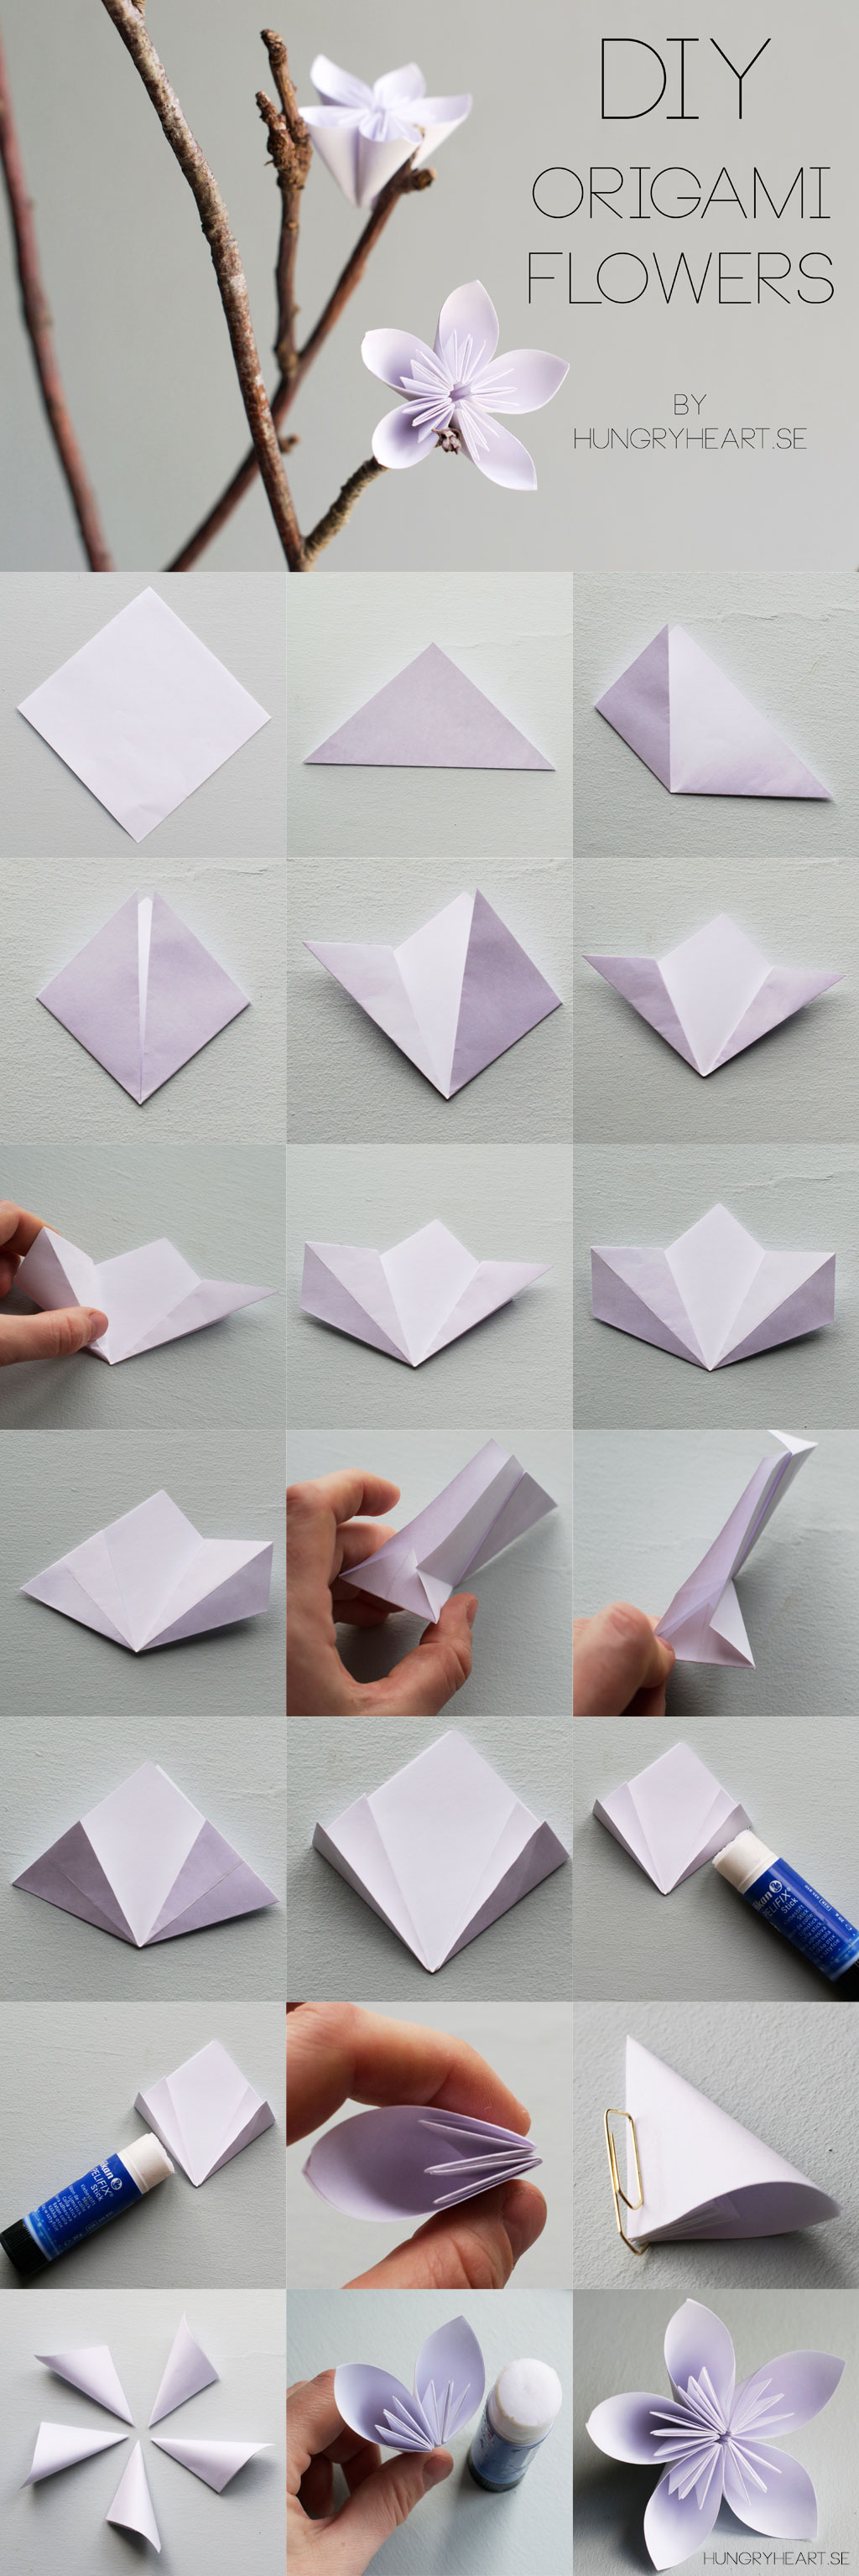 Diy Origami Flower Tutorial Hungry Heart